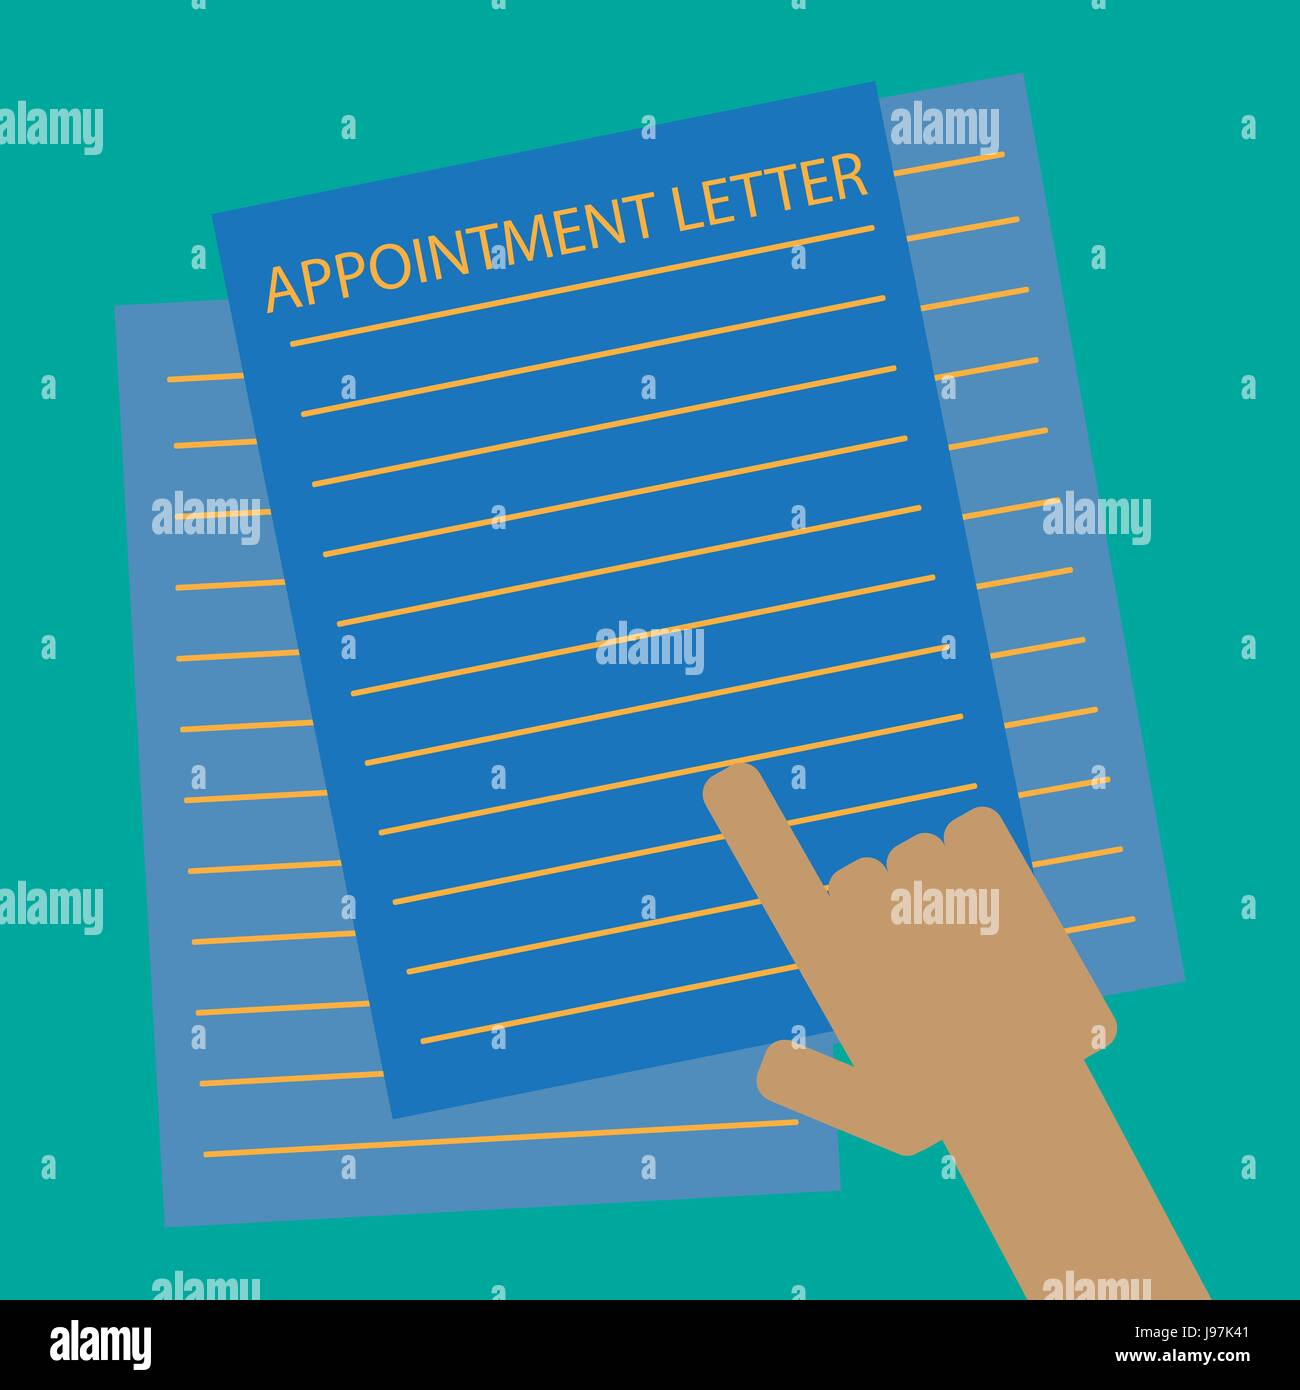 Appointment Letter checking - Stock Image